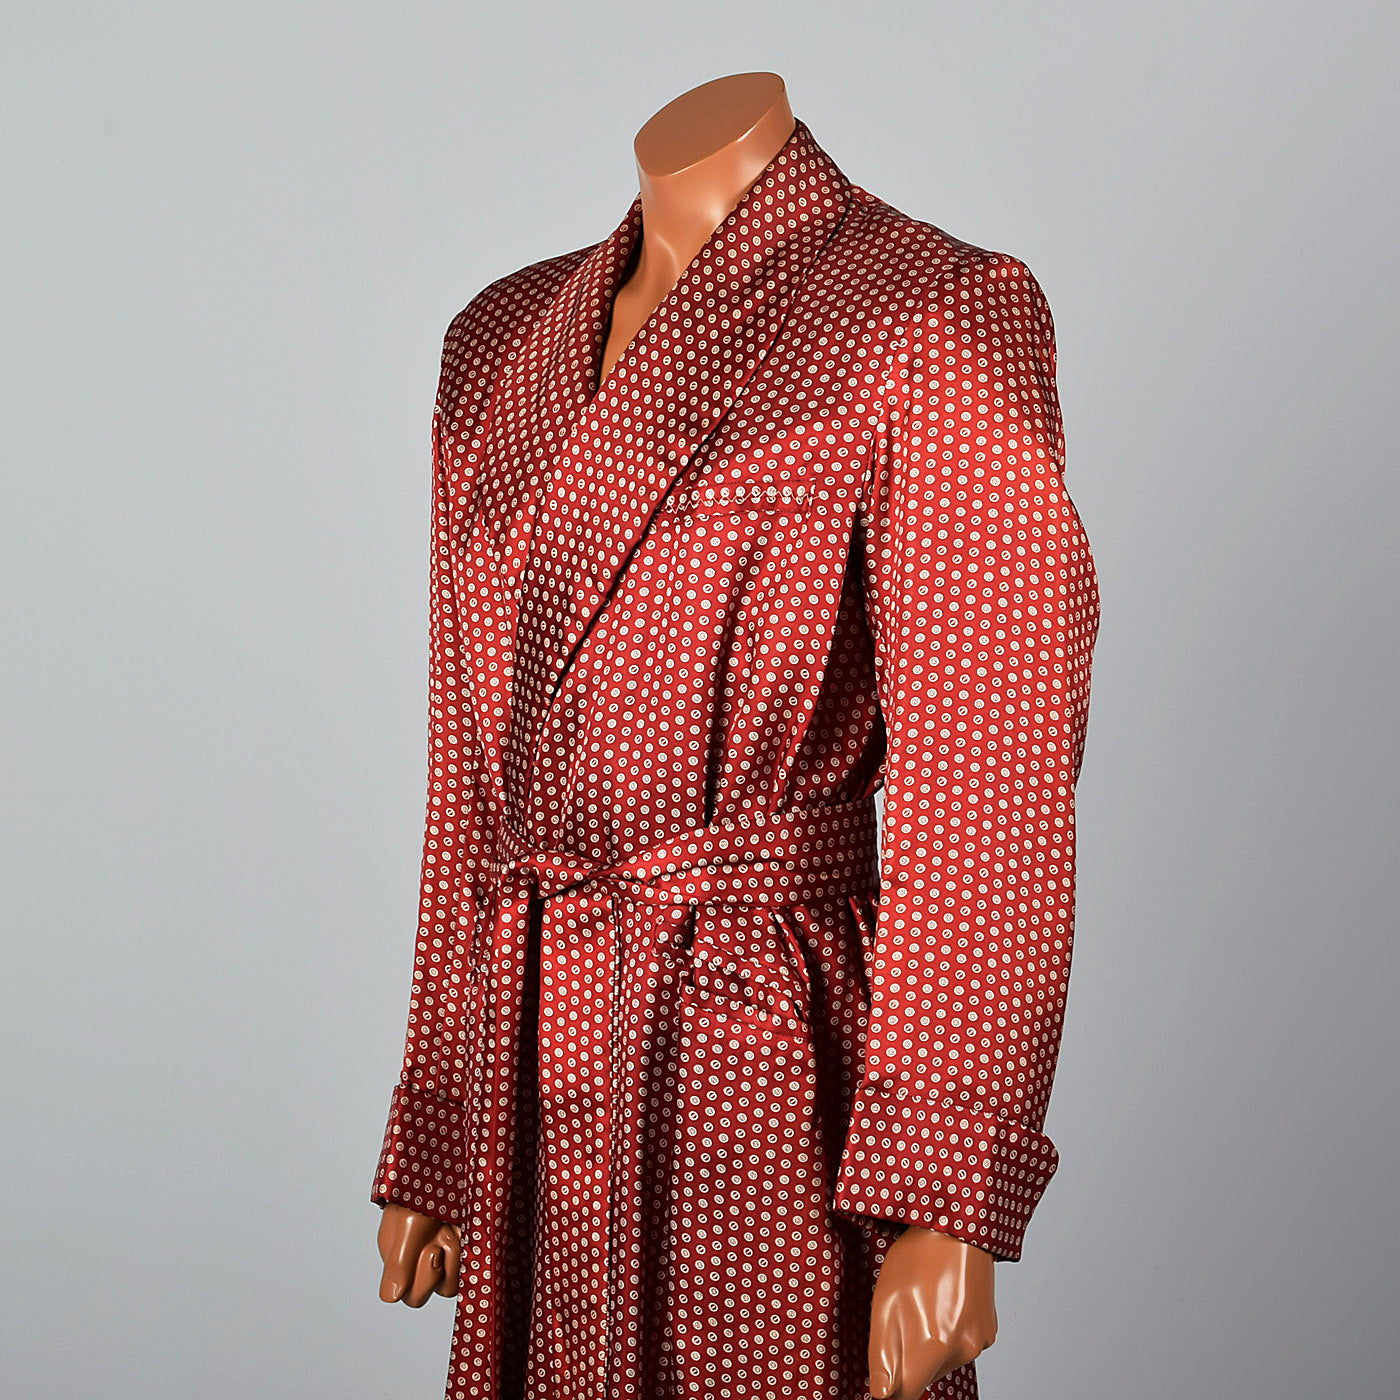 1950s Mens Deadstock Rayon Robe